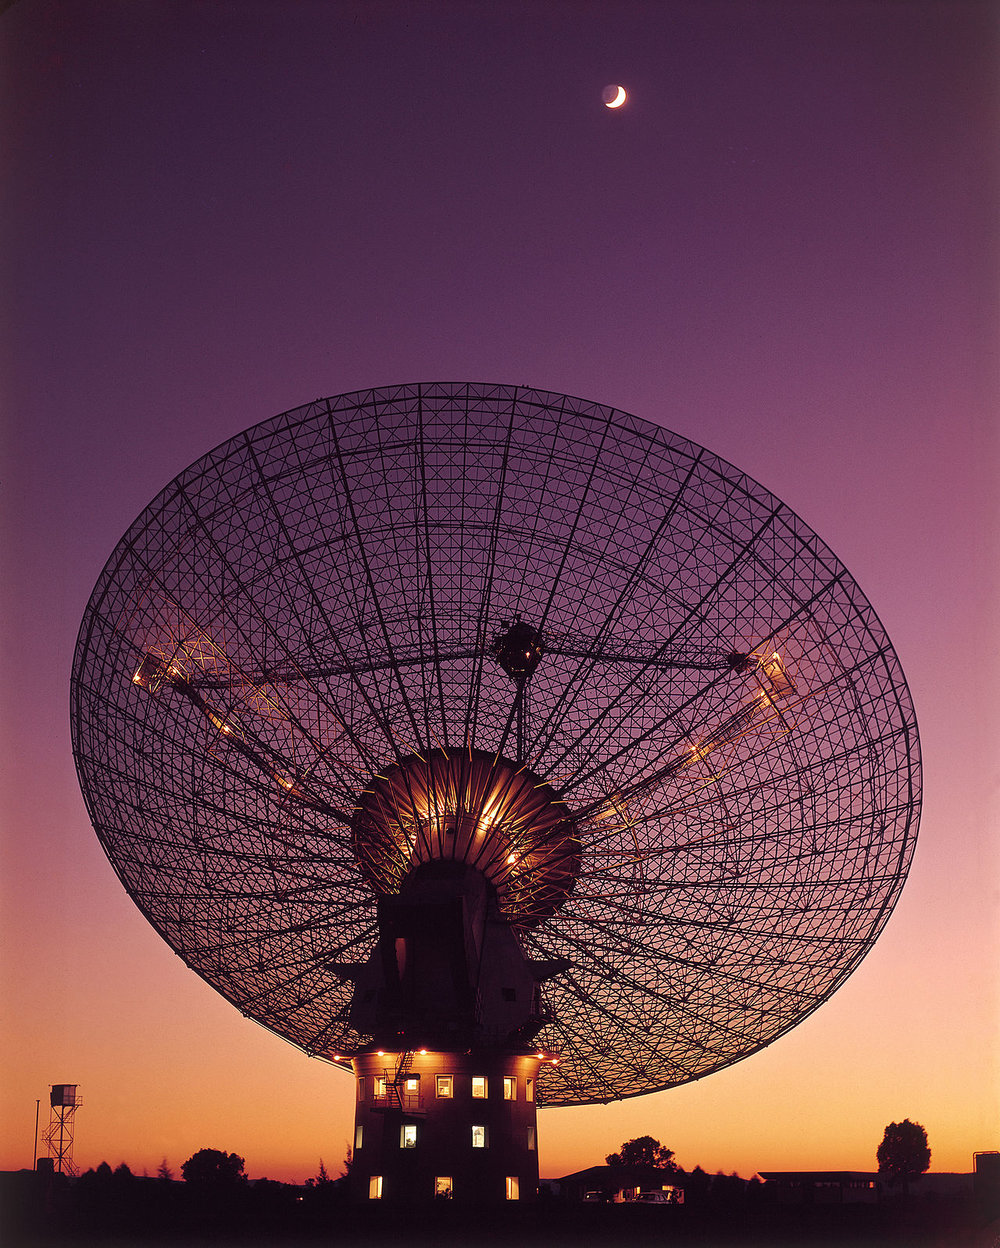 Parkes radio telescope in New South Wales, Australia.  Credit: CSIRO